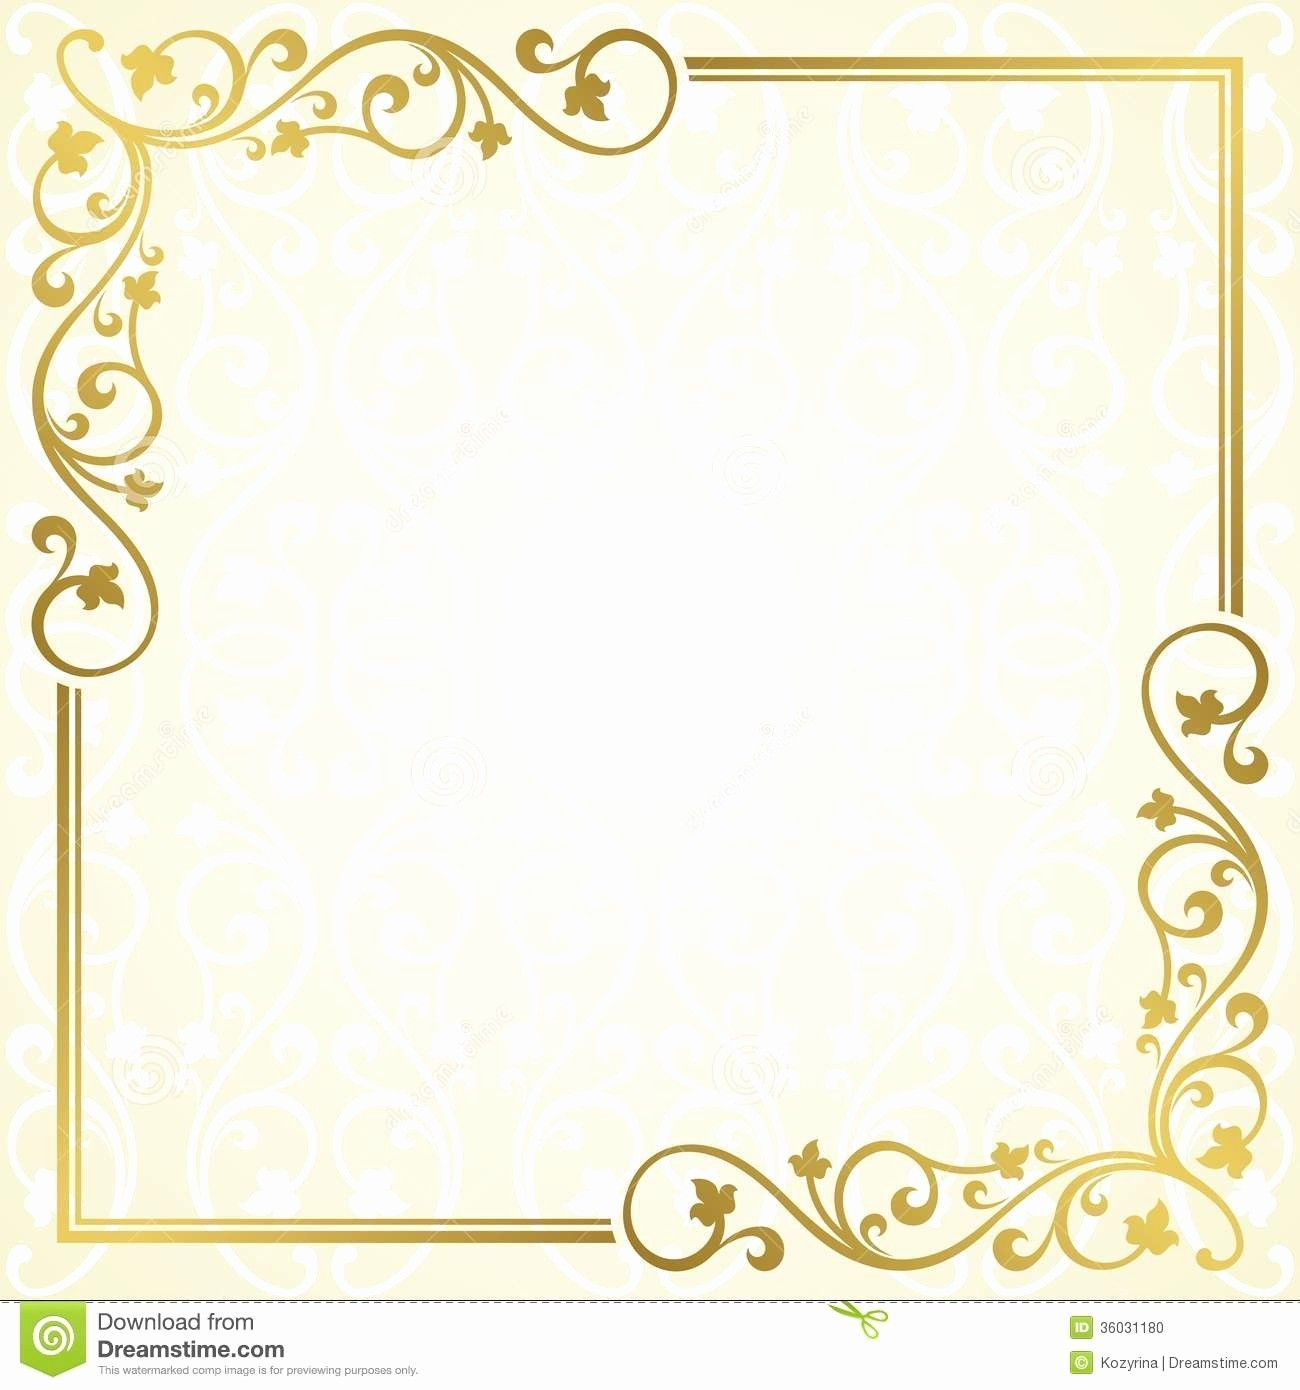 005 Shocking Free Download Invitation Card Format Picture  Marriage In Word Psd WeddingFull